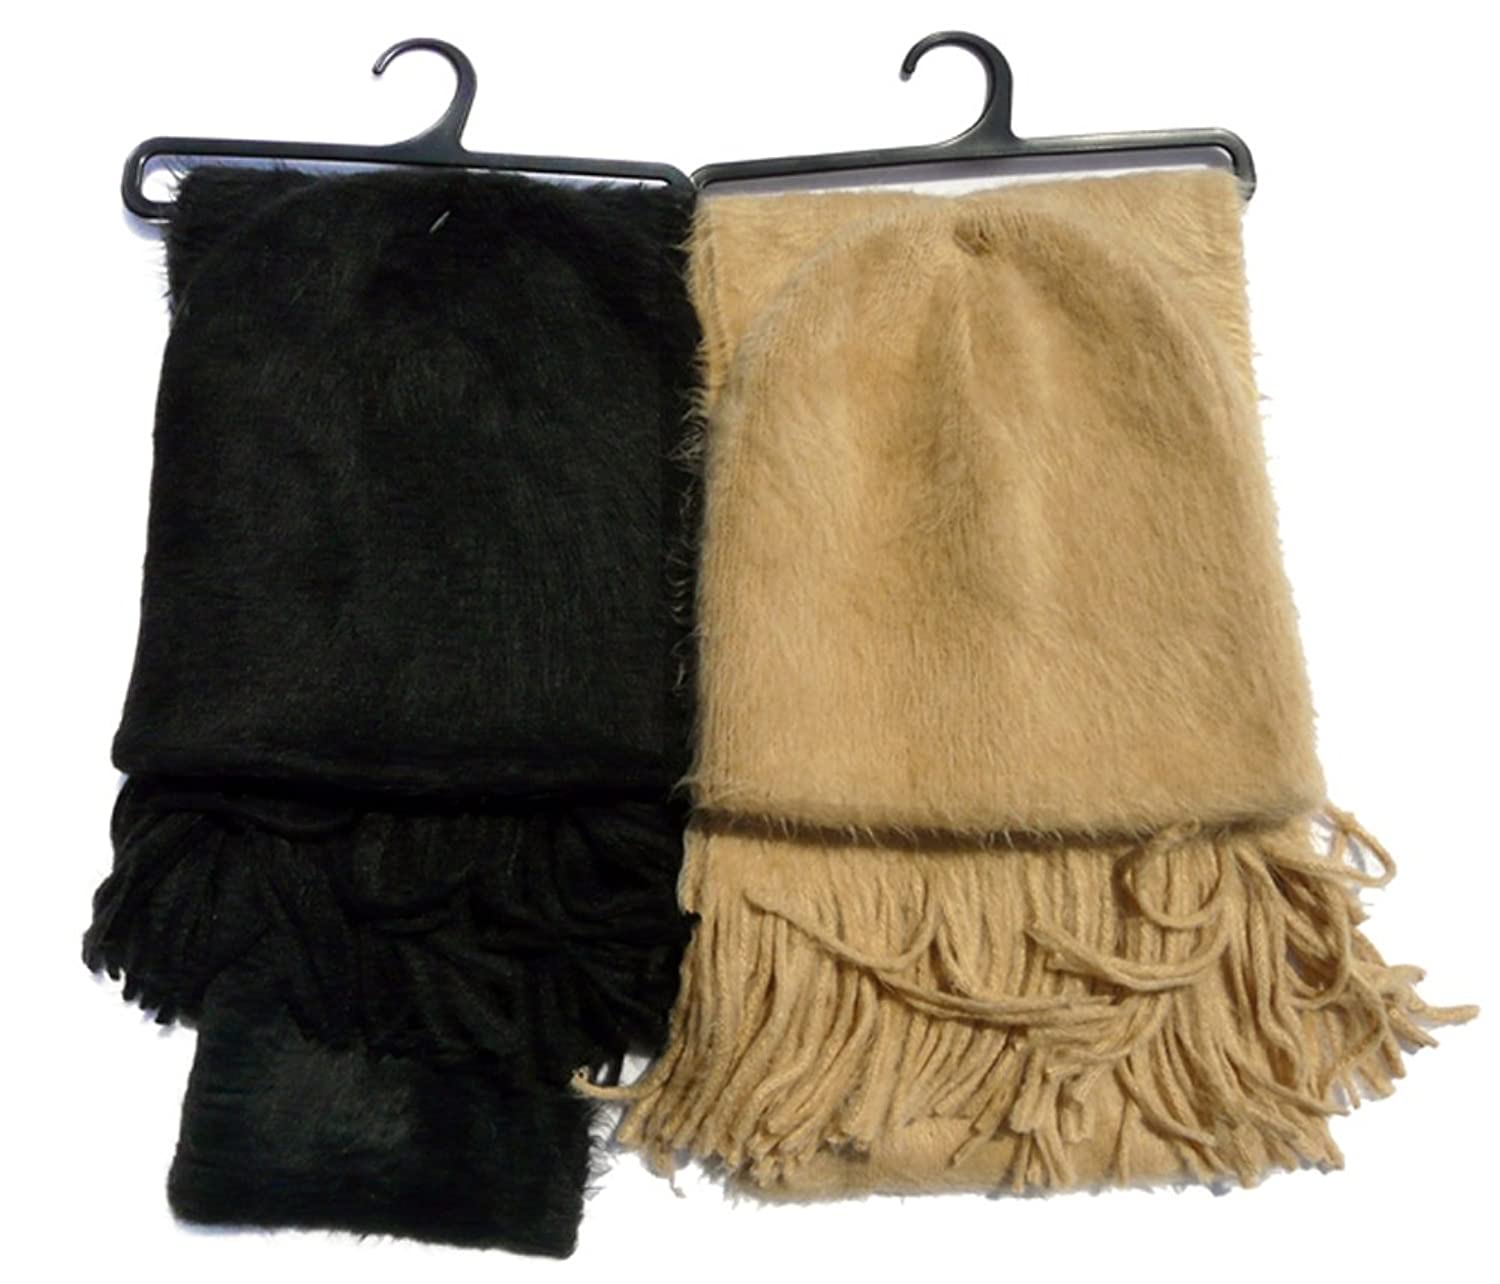 Schonfeld 2-Pack Faux Fur Fuzzy Fashion Scarf Set - Black and Tan